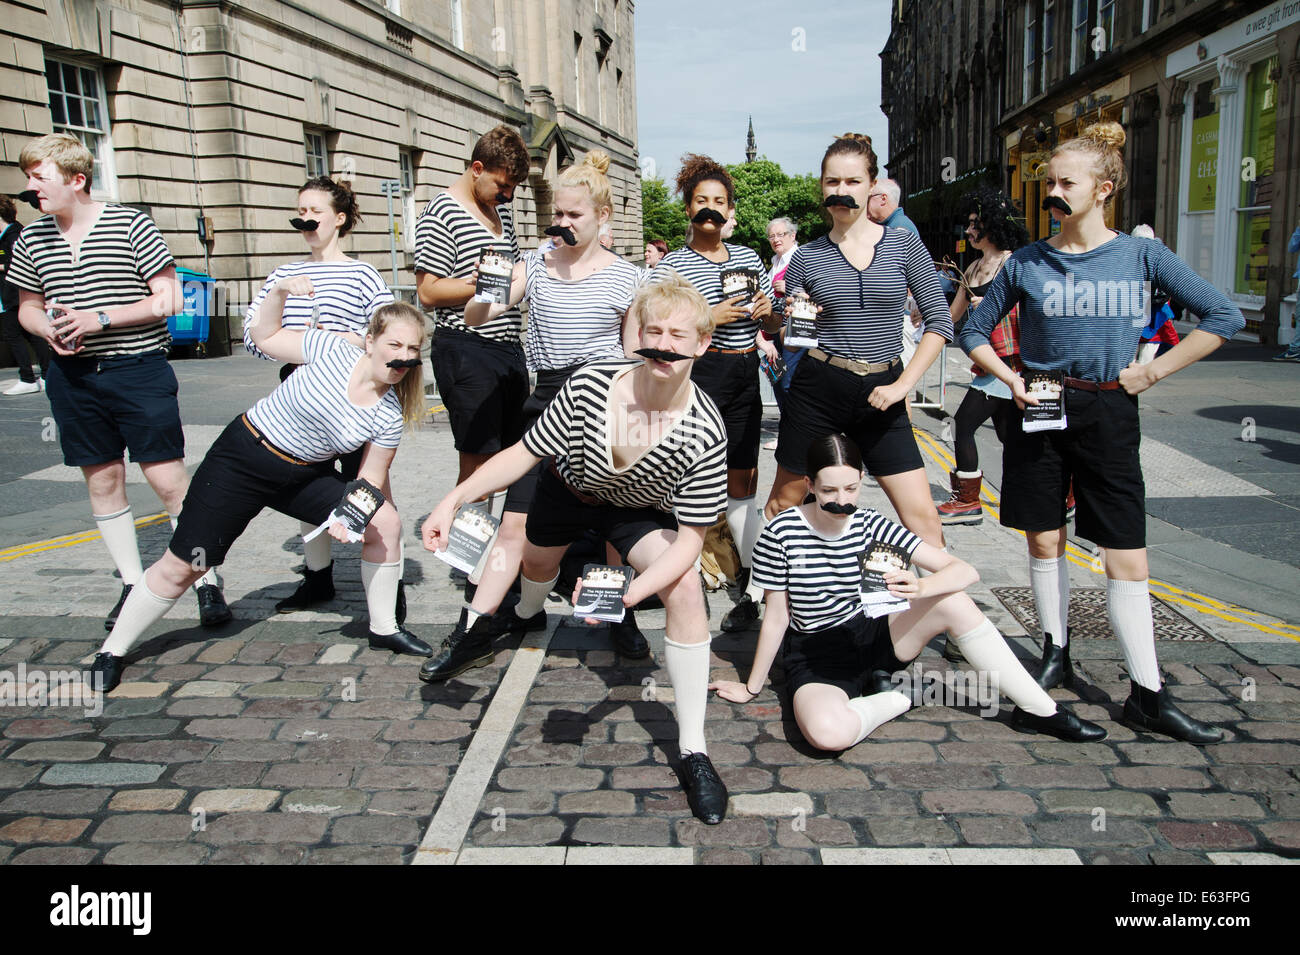 Scotland 2014. Edinburgh  Festival. The Fringe. Handing out flyers for 'The most serious ailments of St Kranks'. - Stock Image